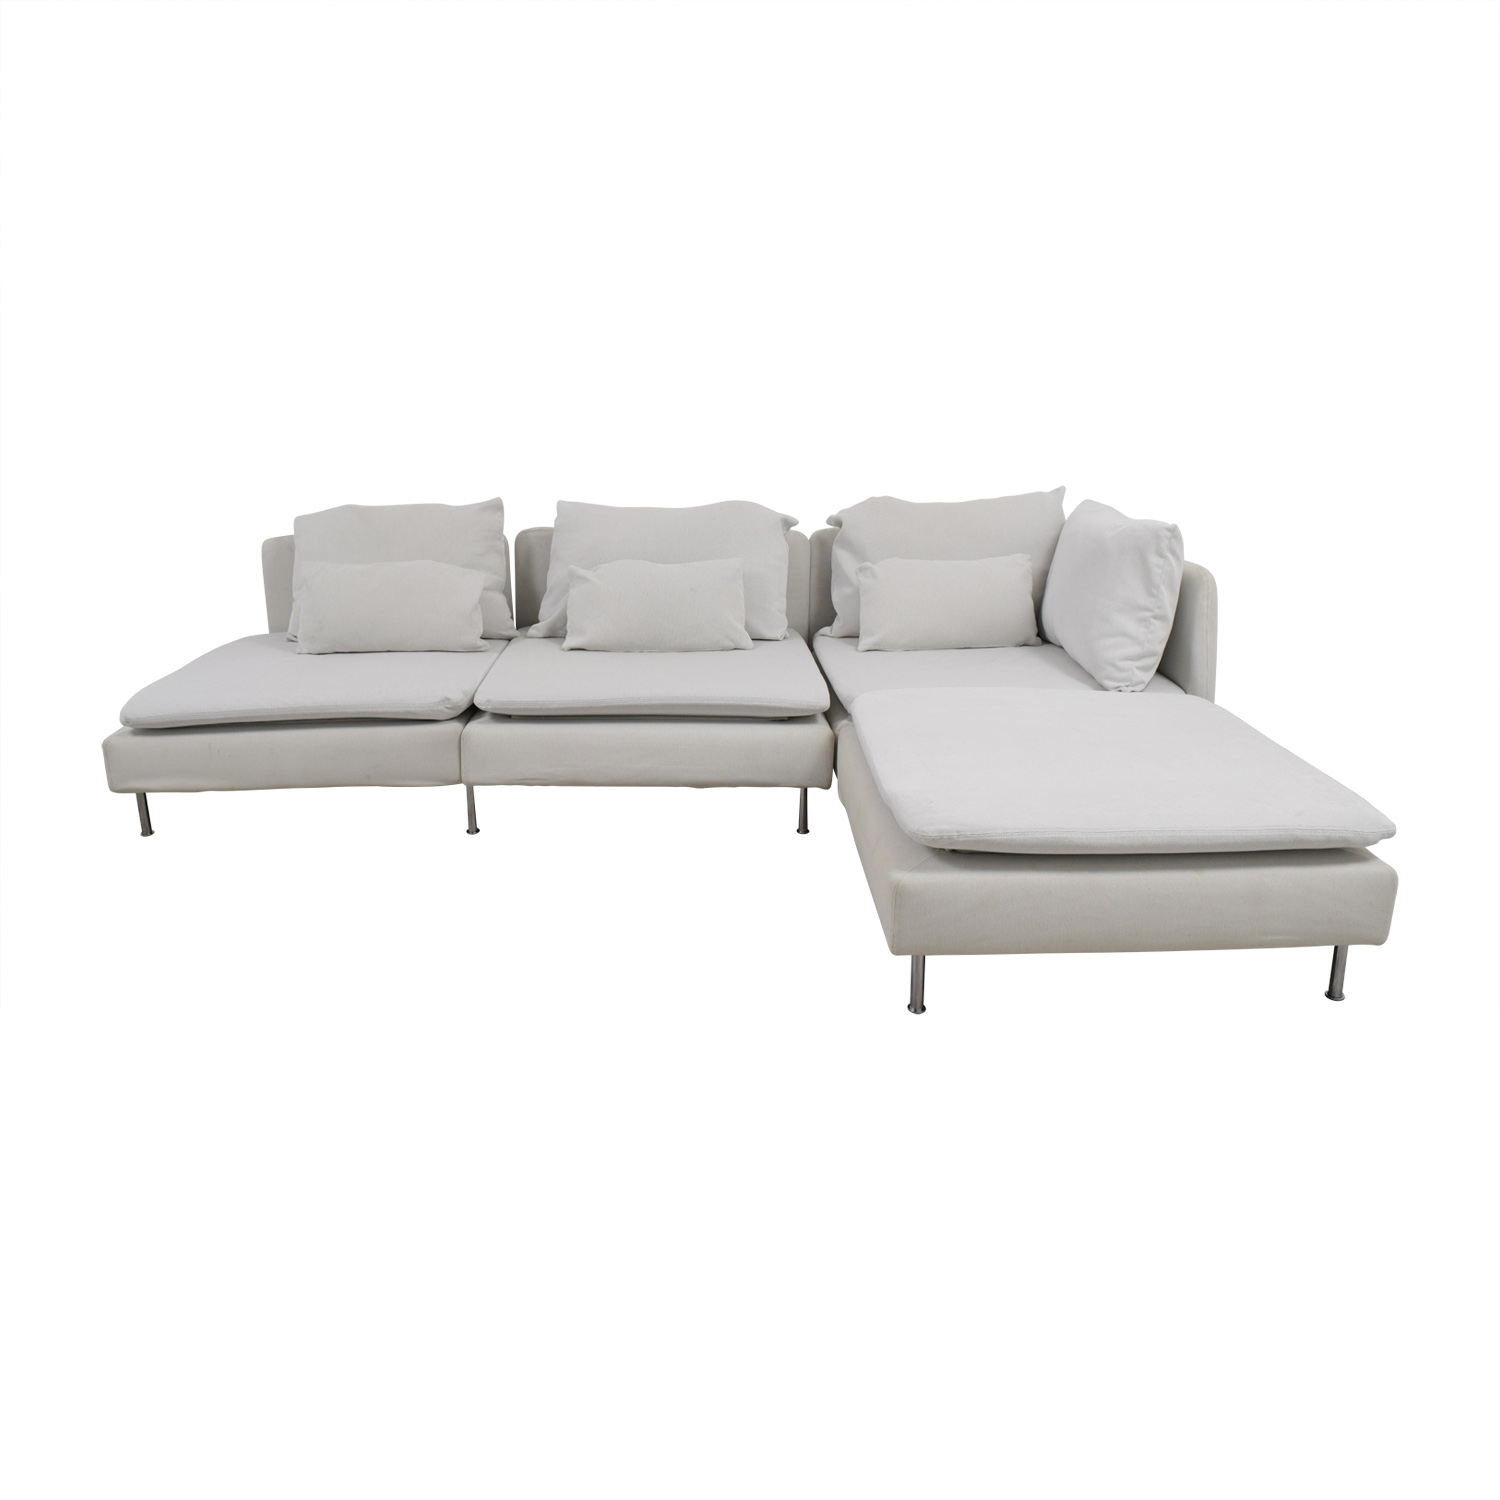 77% OFF - IKEA IKEA Soderhamn White Sectional / Sofas